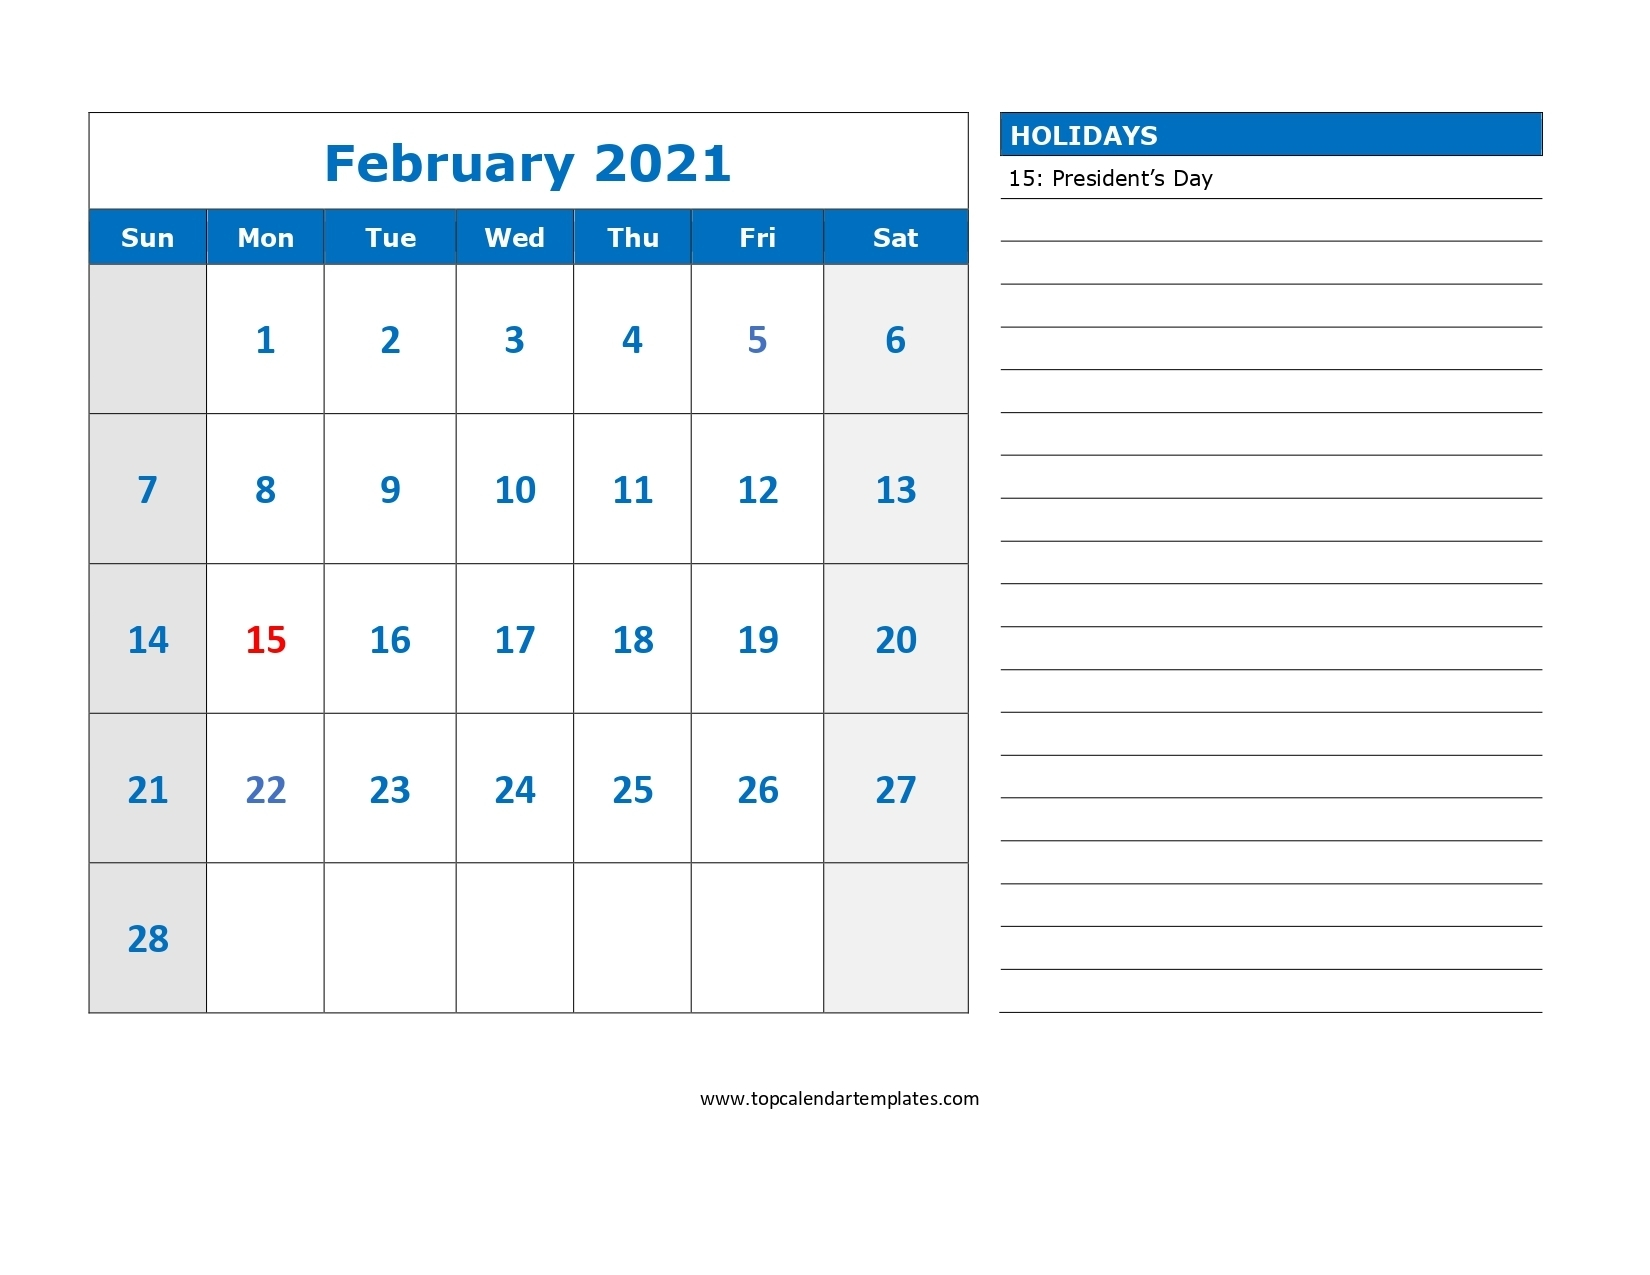 Printable February 2021 Calendar Template - Download Now